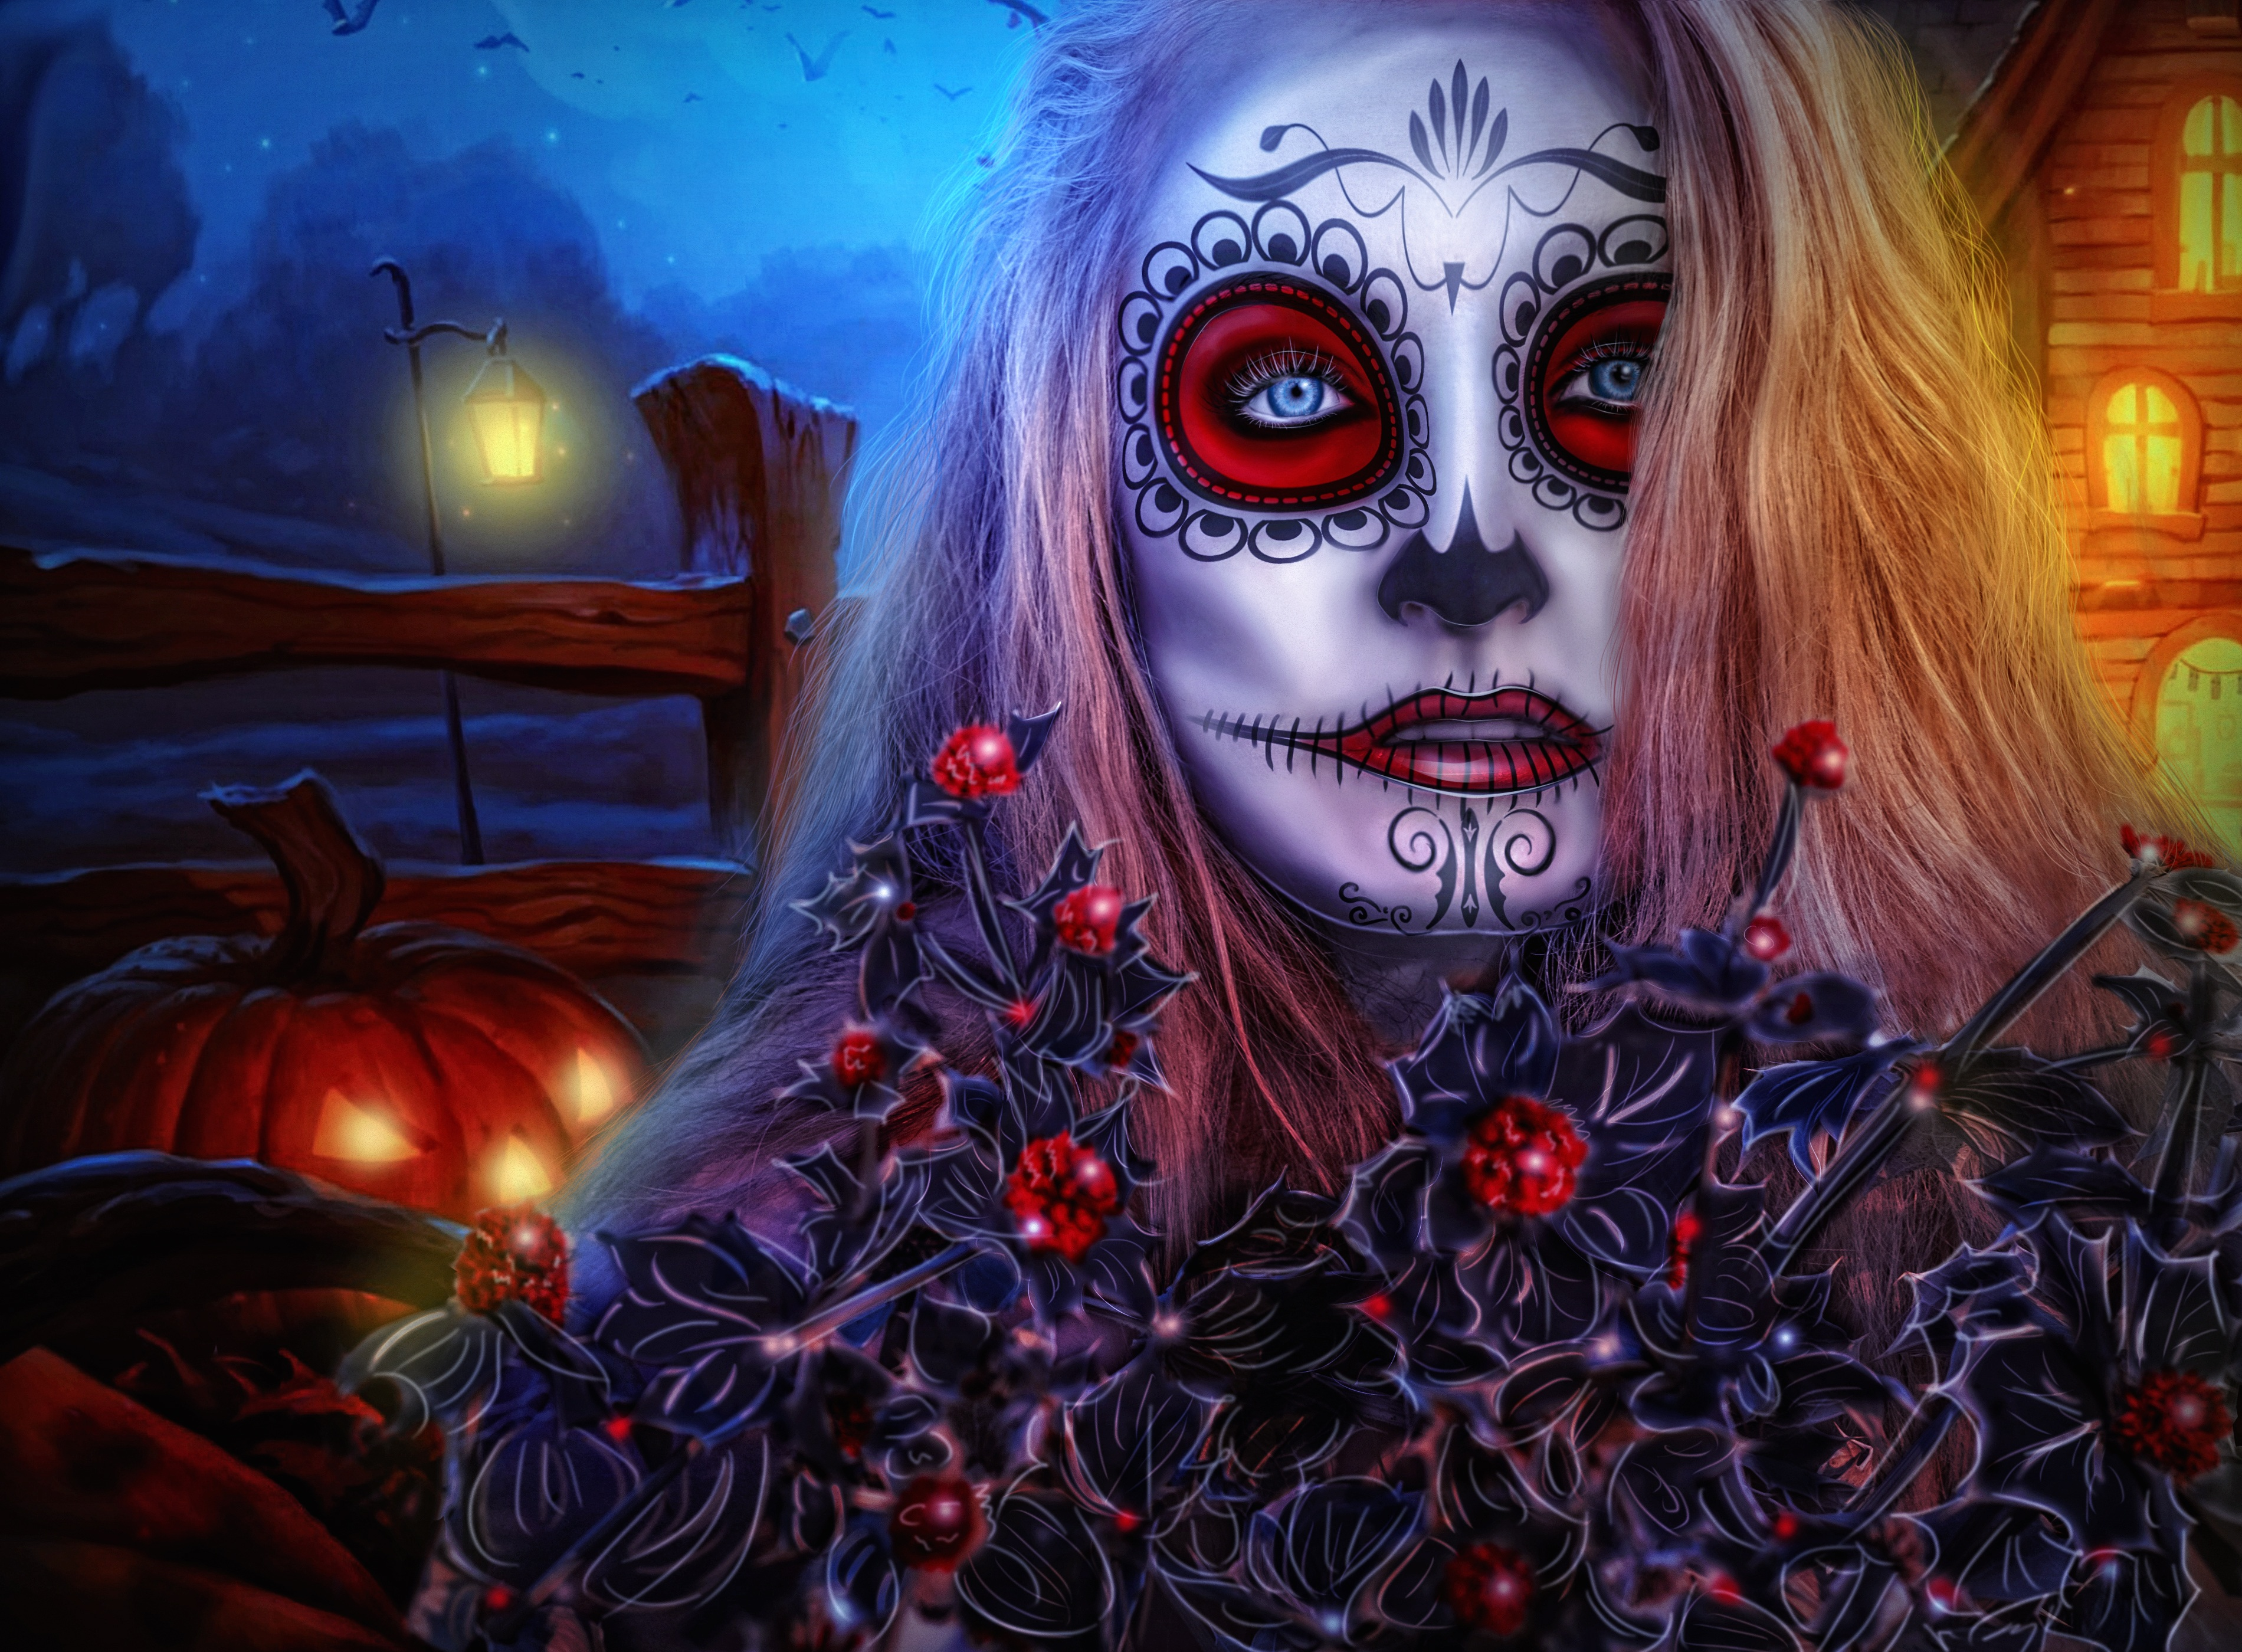 Halloween, Festival, Horror, Lady, Woman, HQ Photo